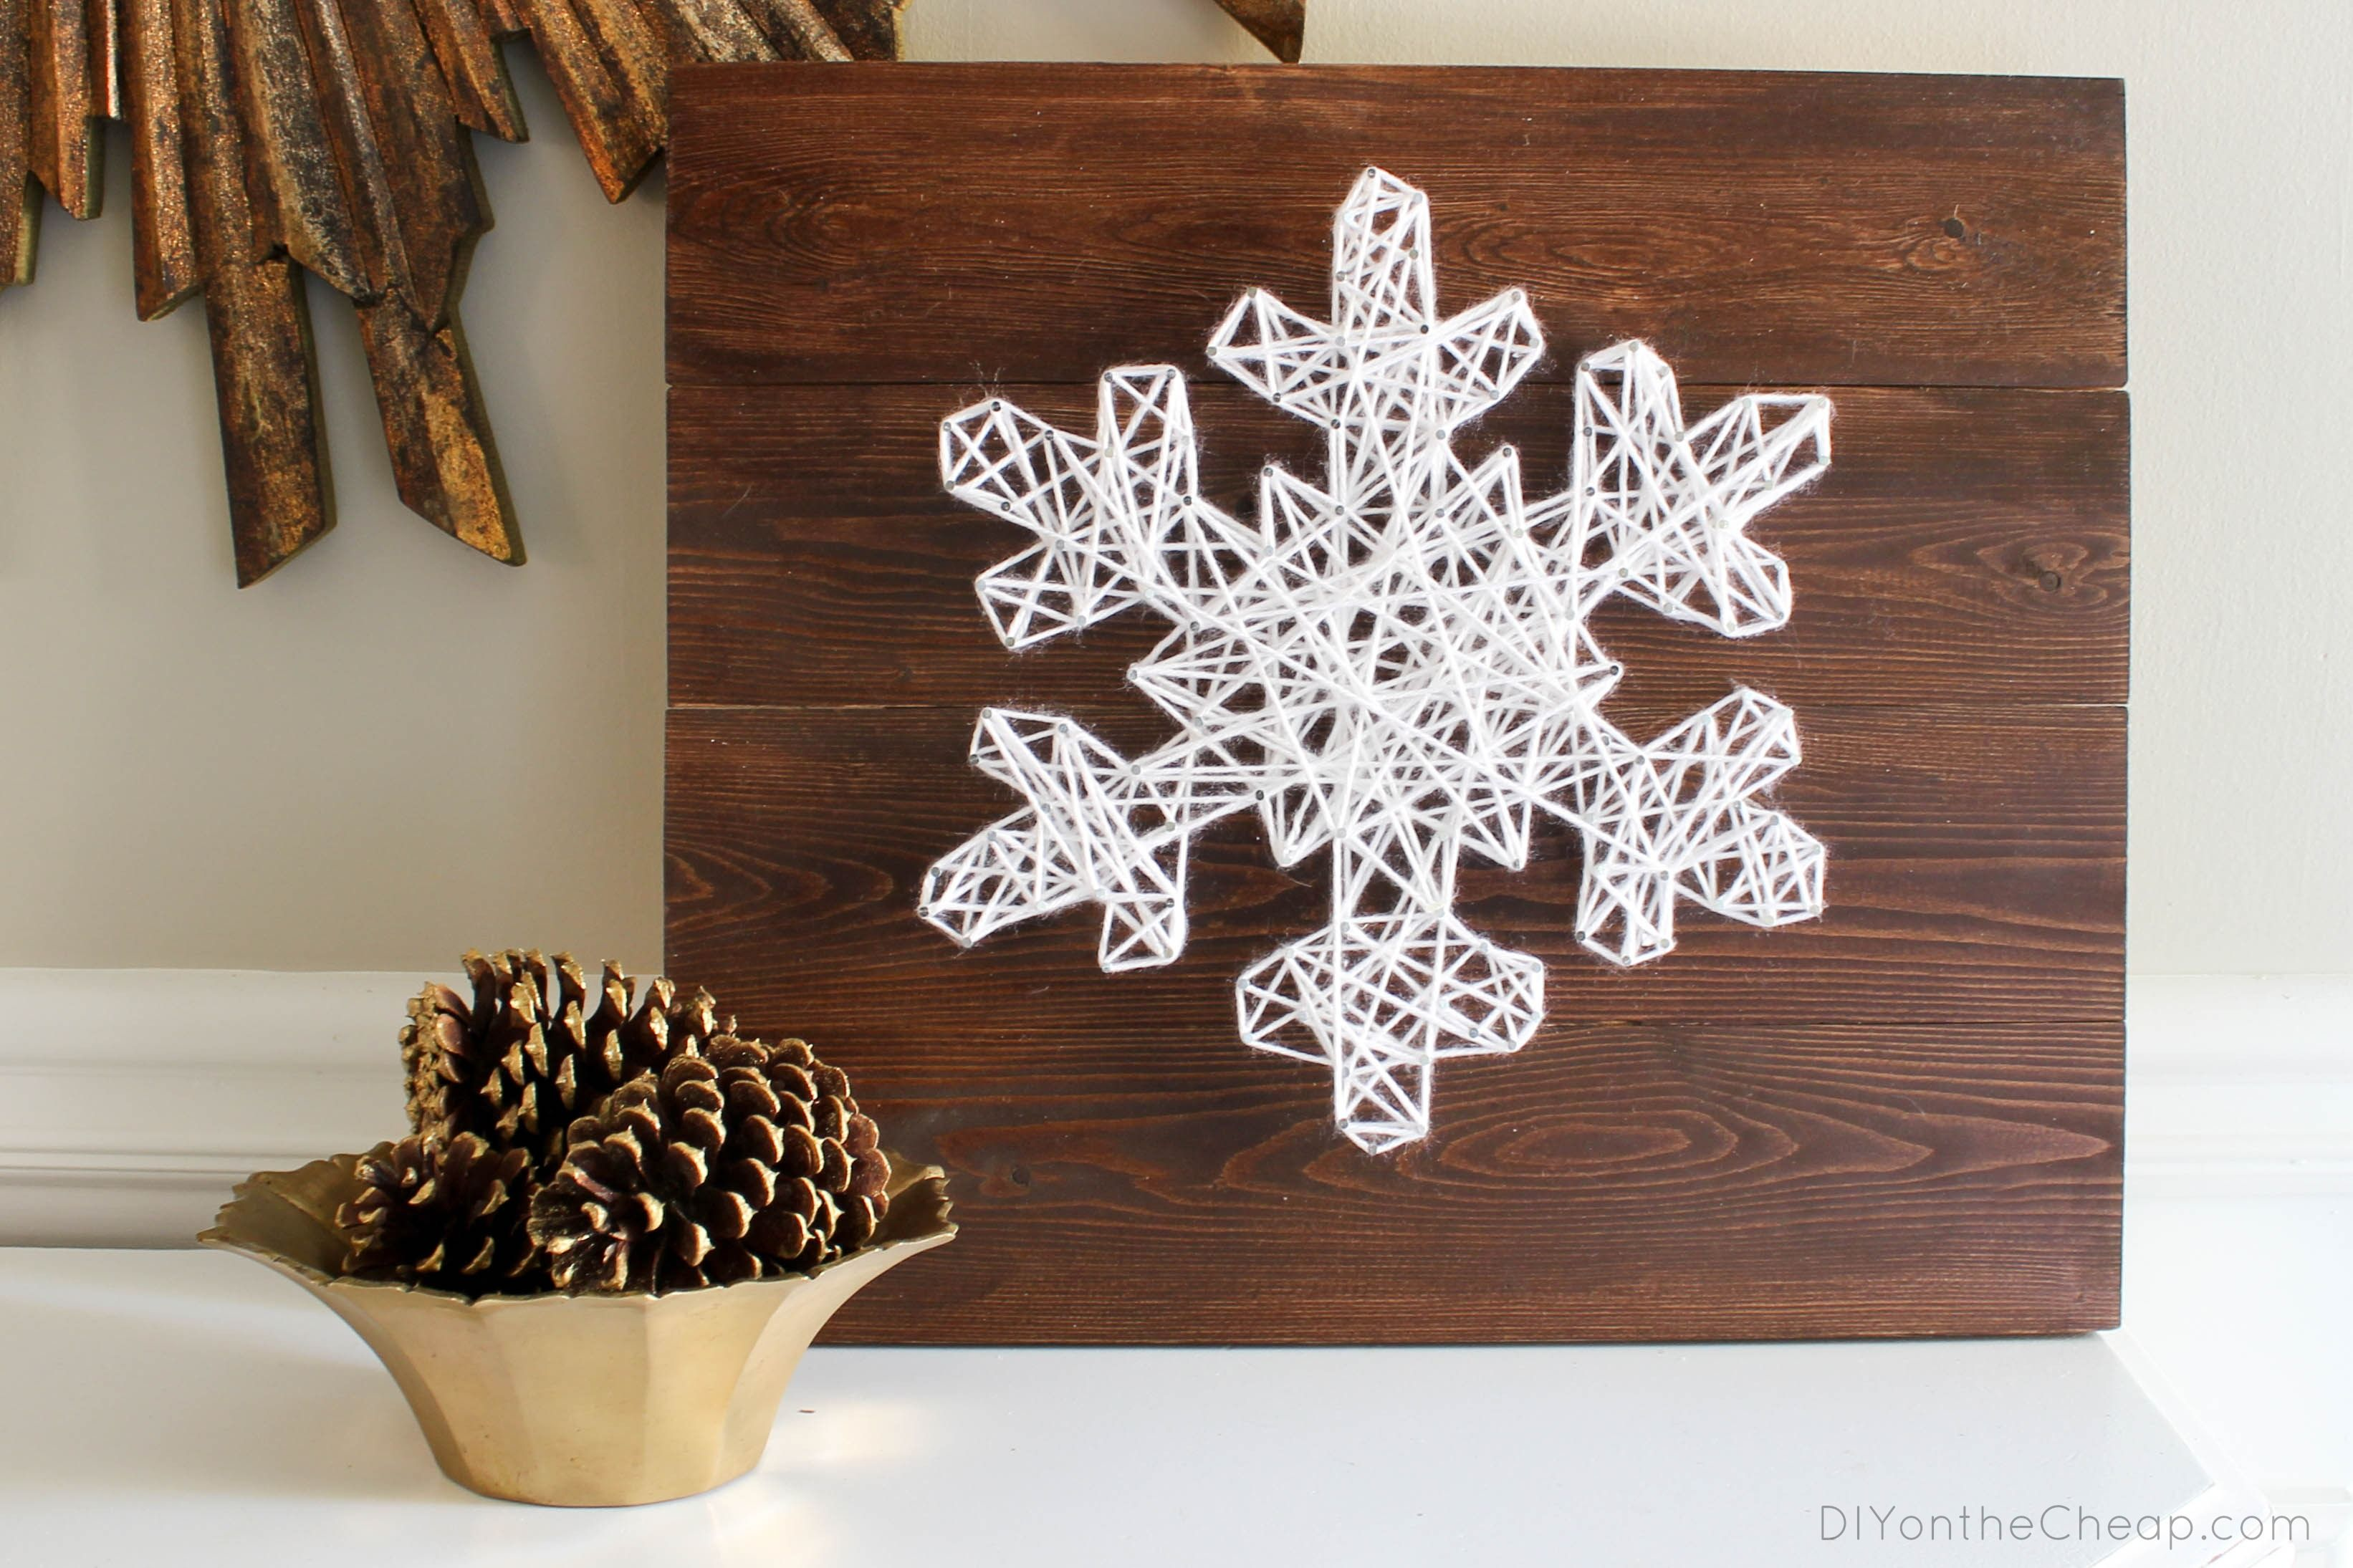 DIY Snowflake String Art + 18 Easy to Build Christmas Projects ...